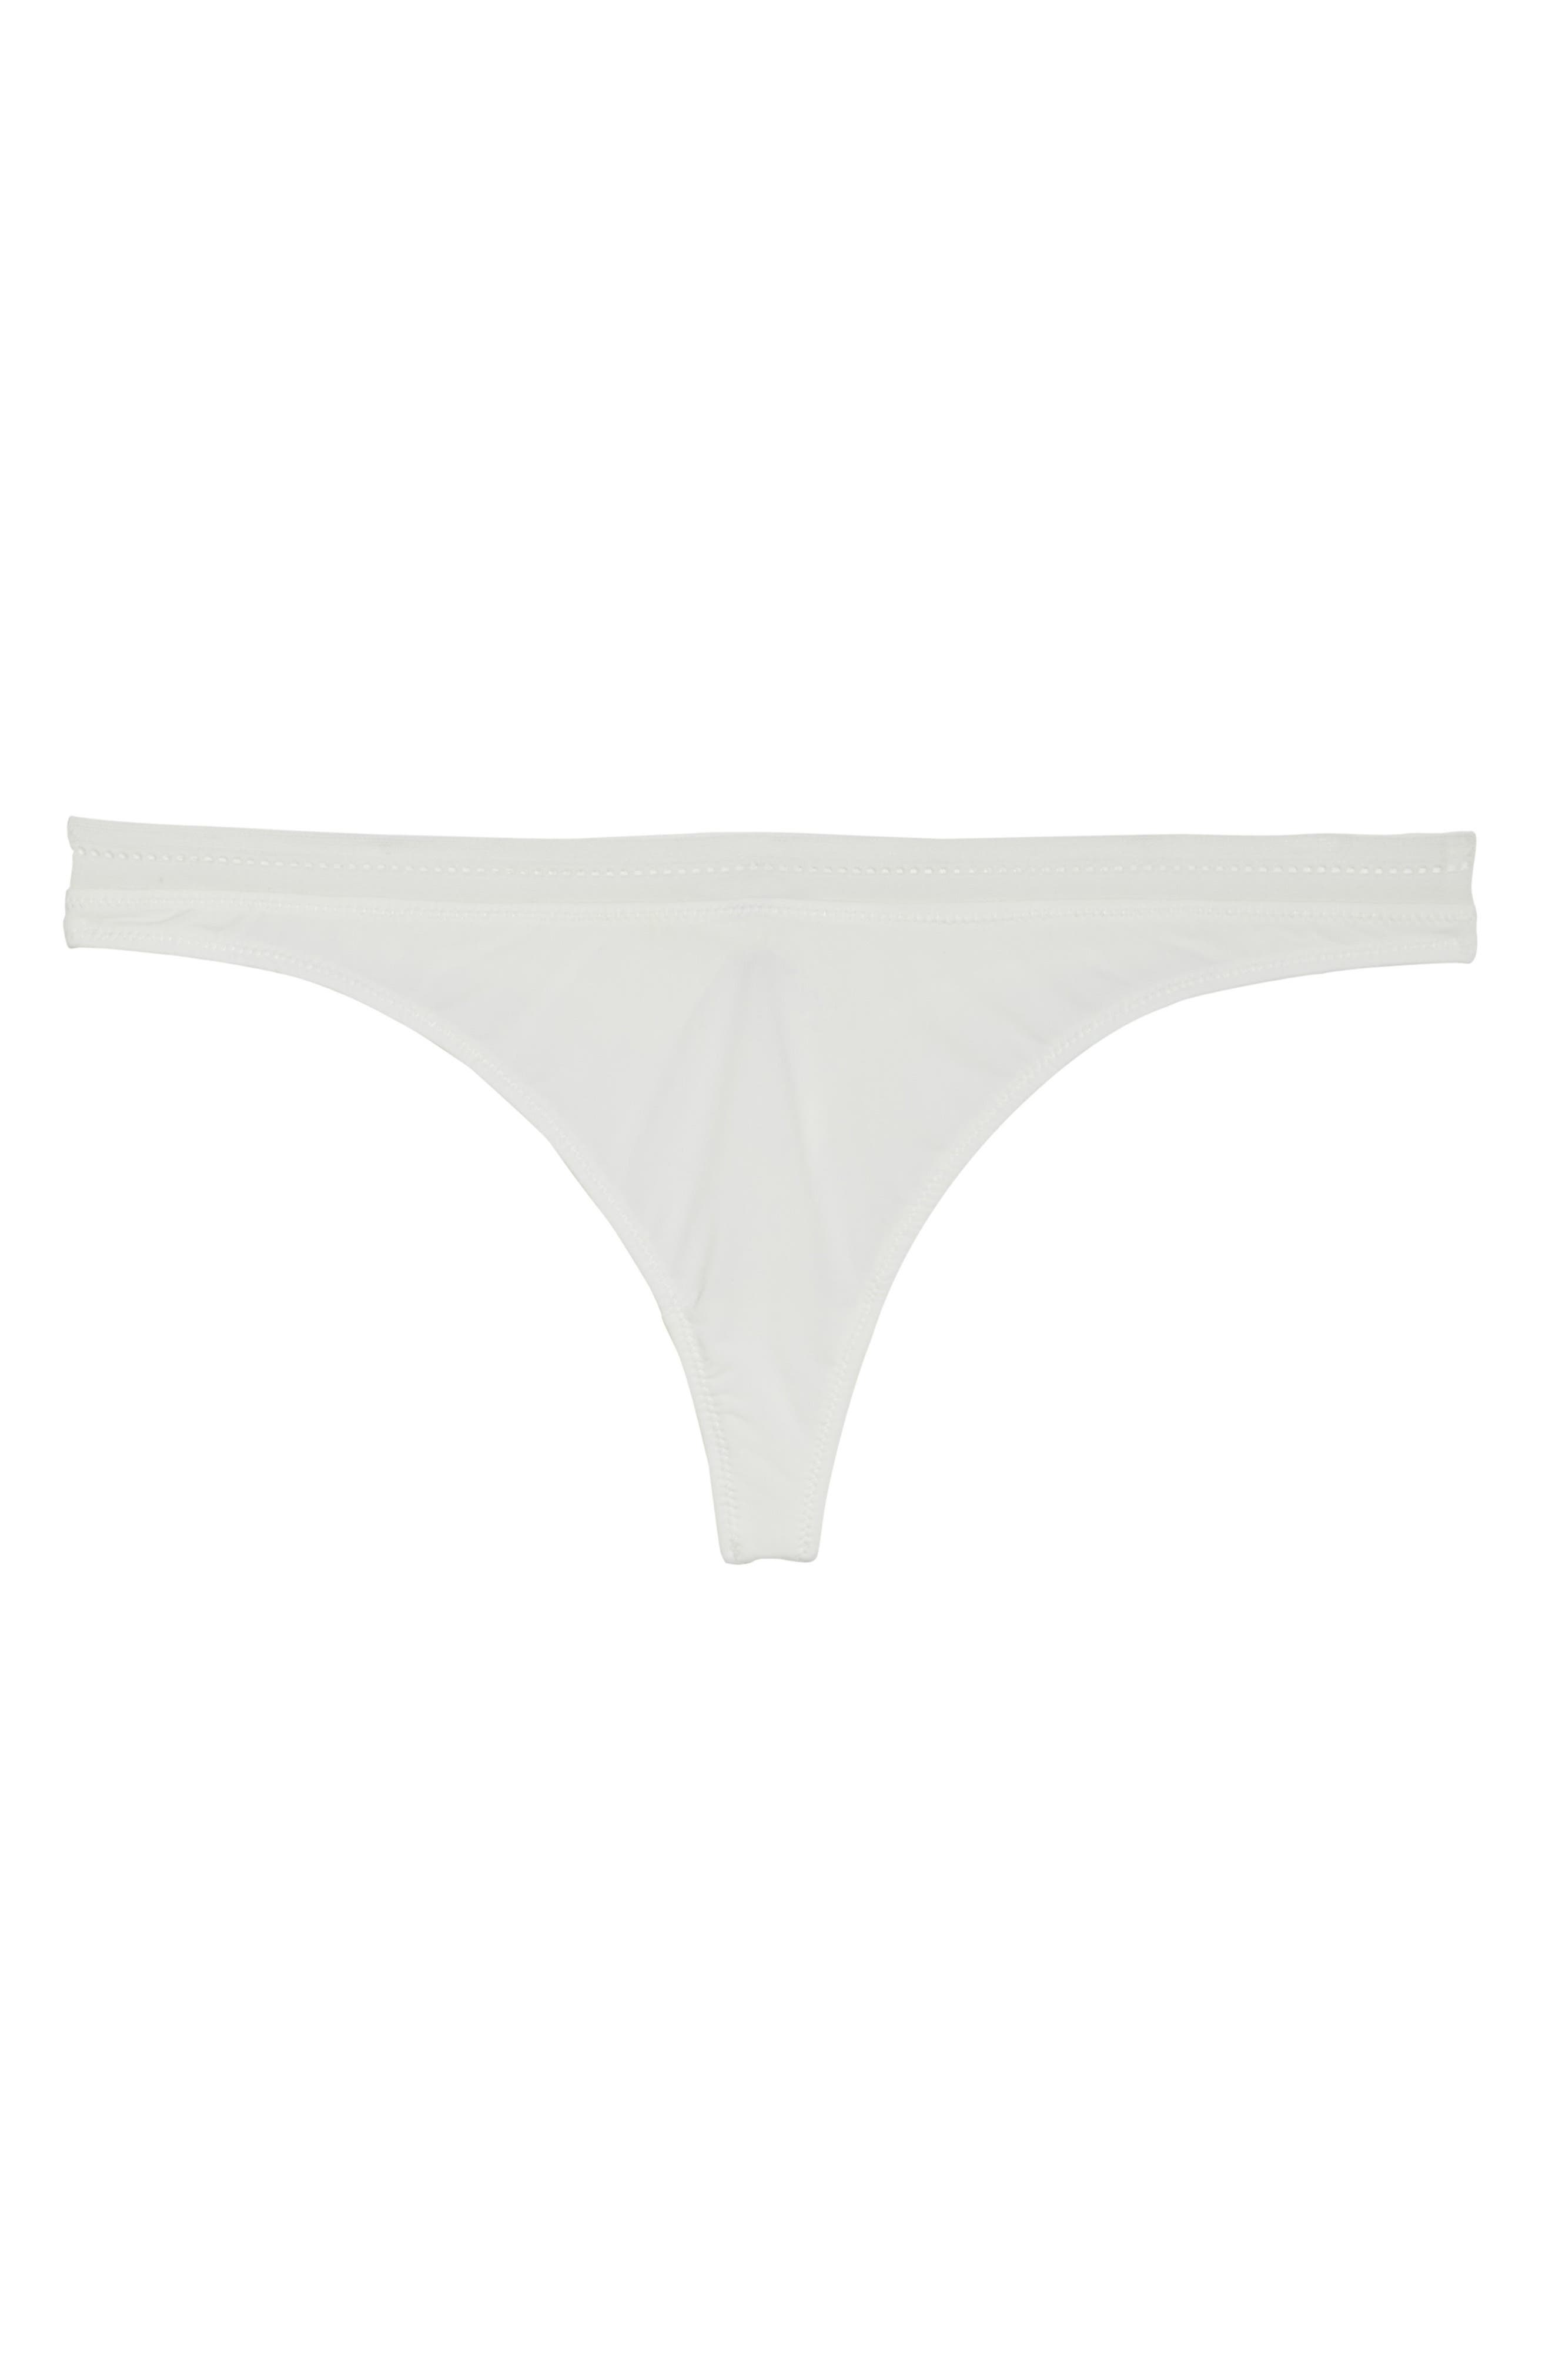 Intimately FP Truth or Dare Thong,                             Alternate thumbnail 35, color,